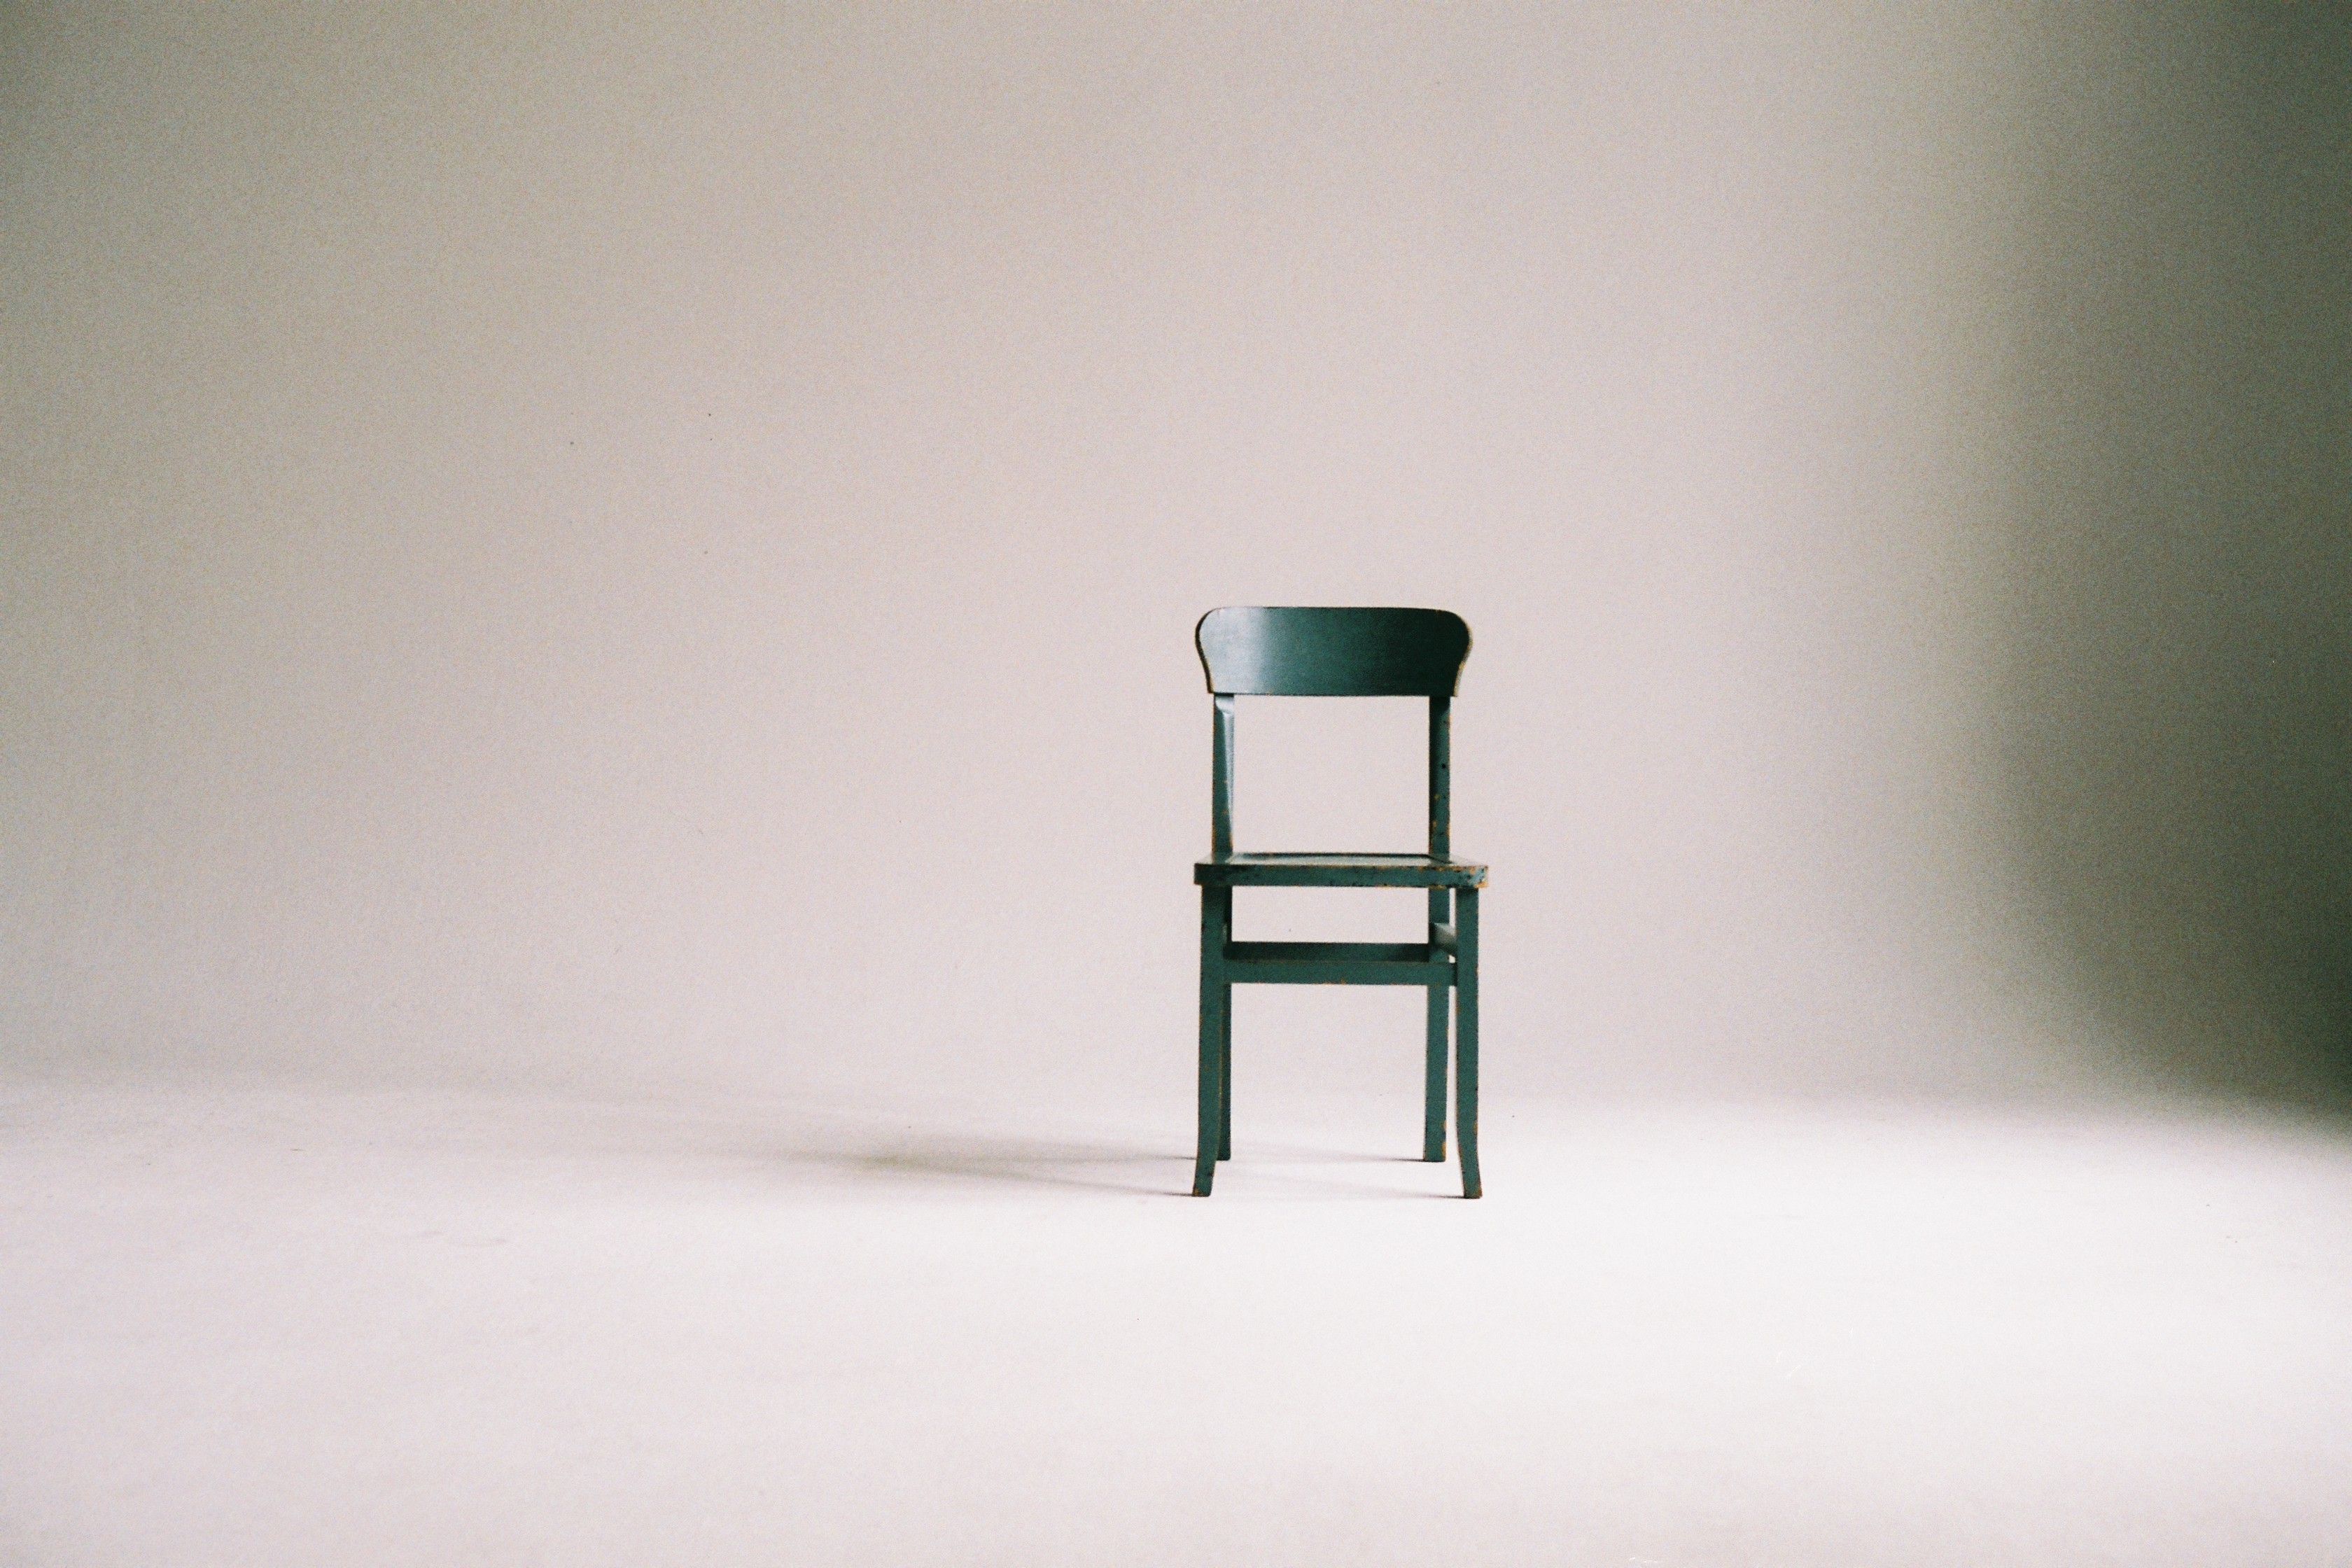 nice chair stool how to reupholster a dining room cushion 519 artistic images pexels free stock photos green wooden on white surface